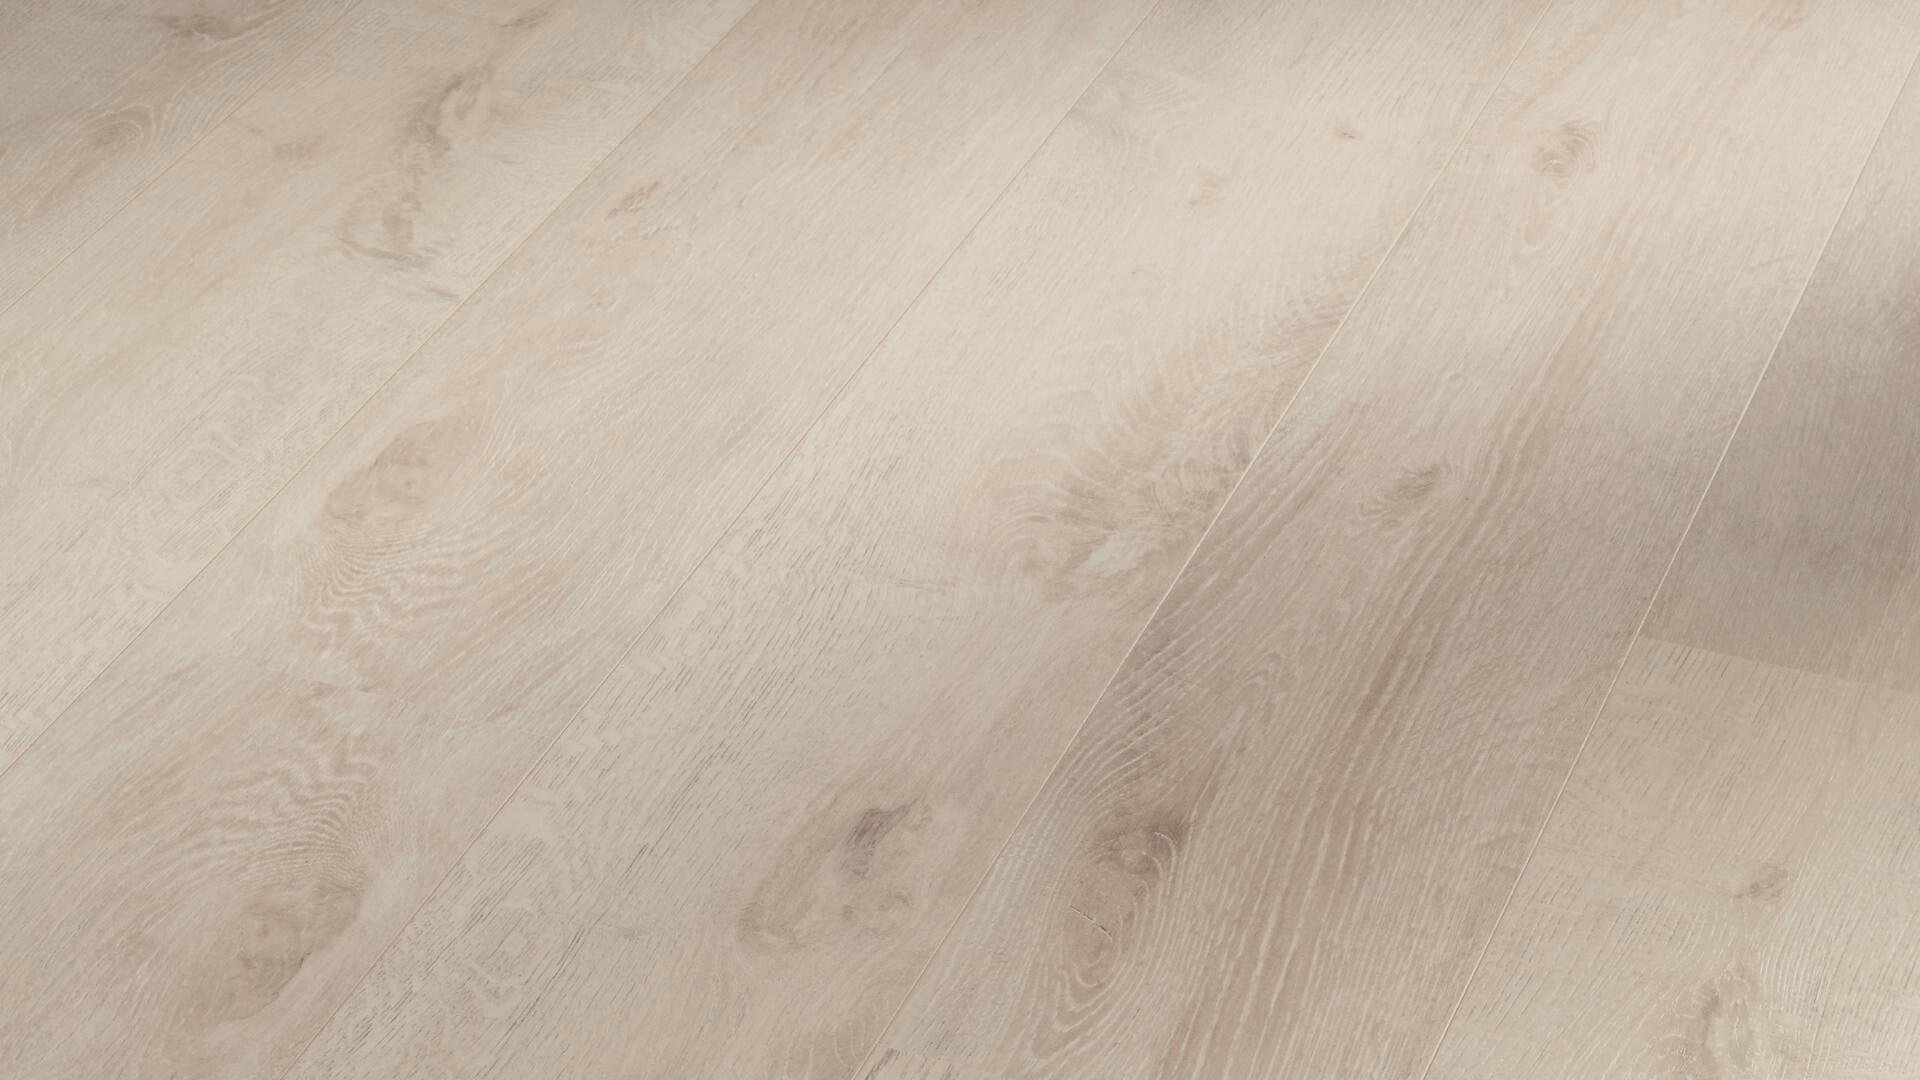 Laminate flooring Melango LD 300|20 Arctic white oak 6503